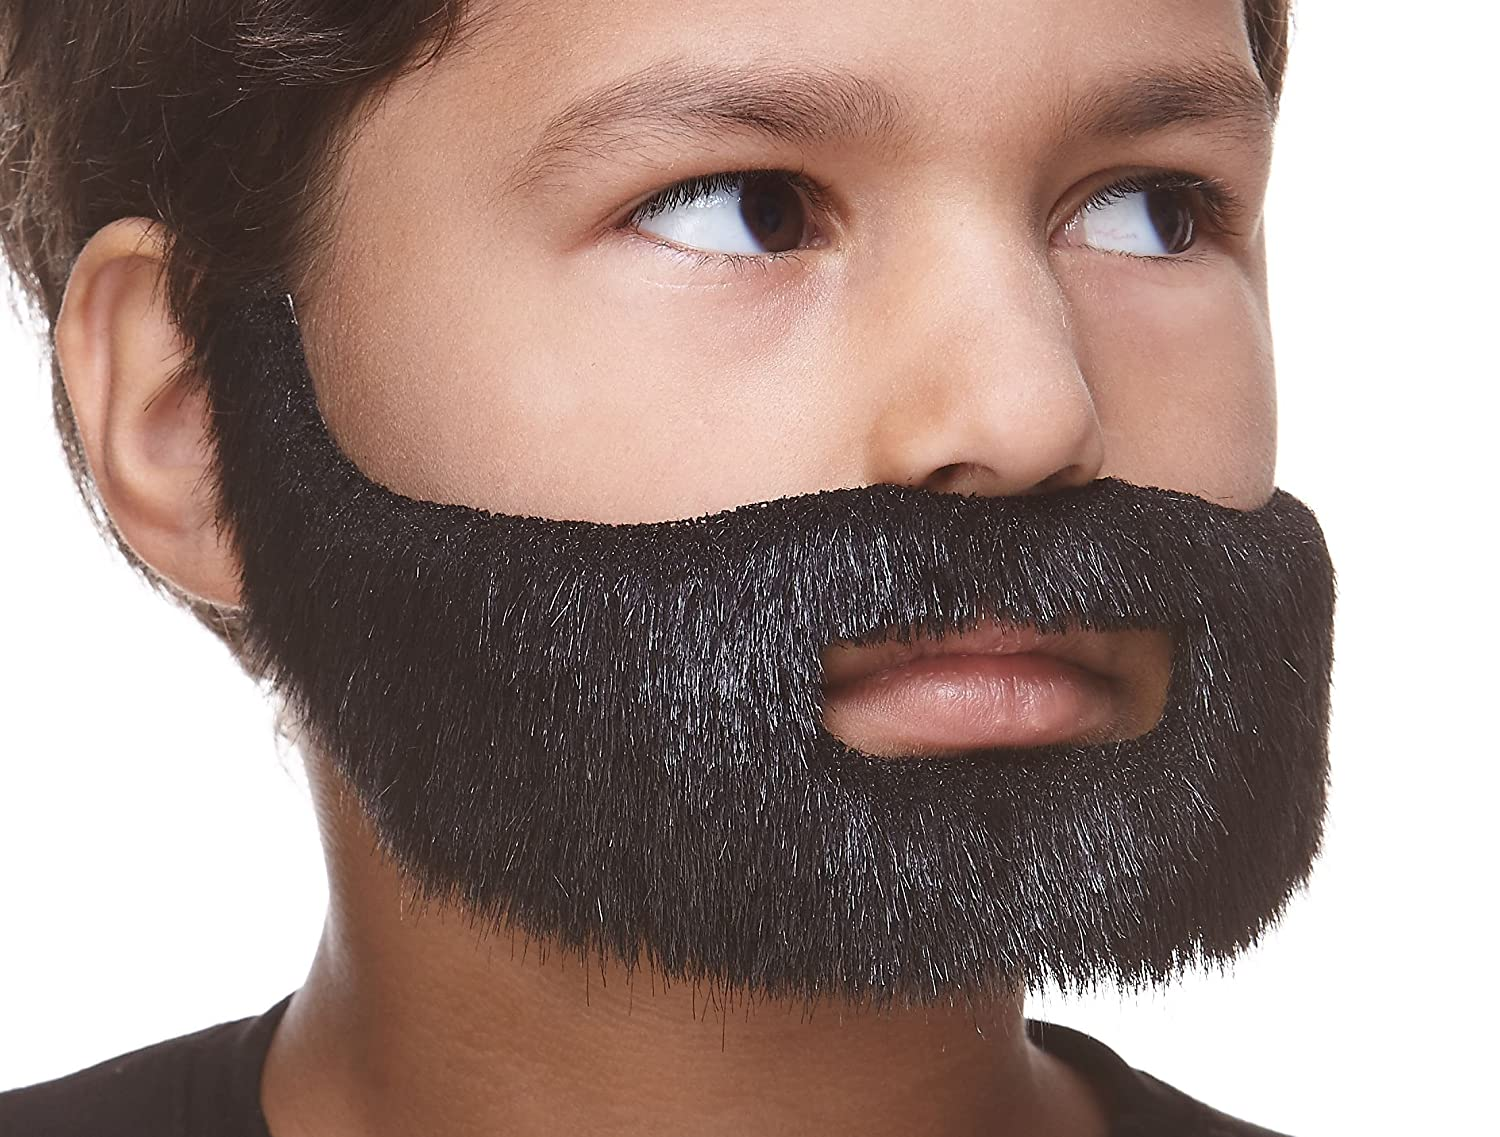 Mustaches Fake Beard Small Novelty Self Adhesive Short Boxed False Facial Hair Costume Accessory for Kids